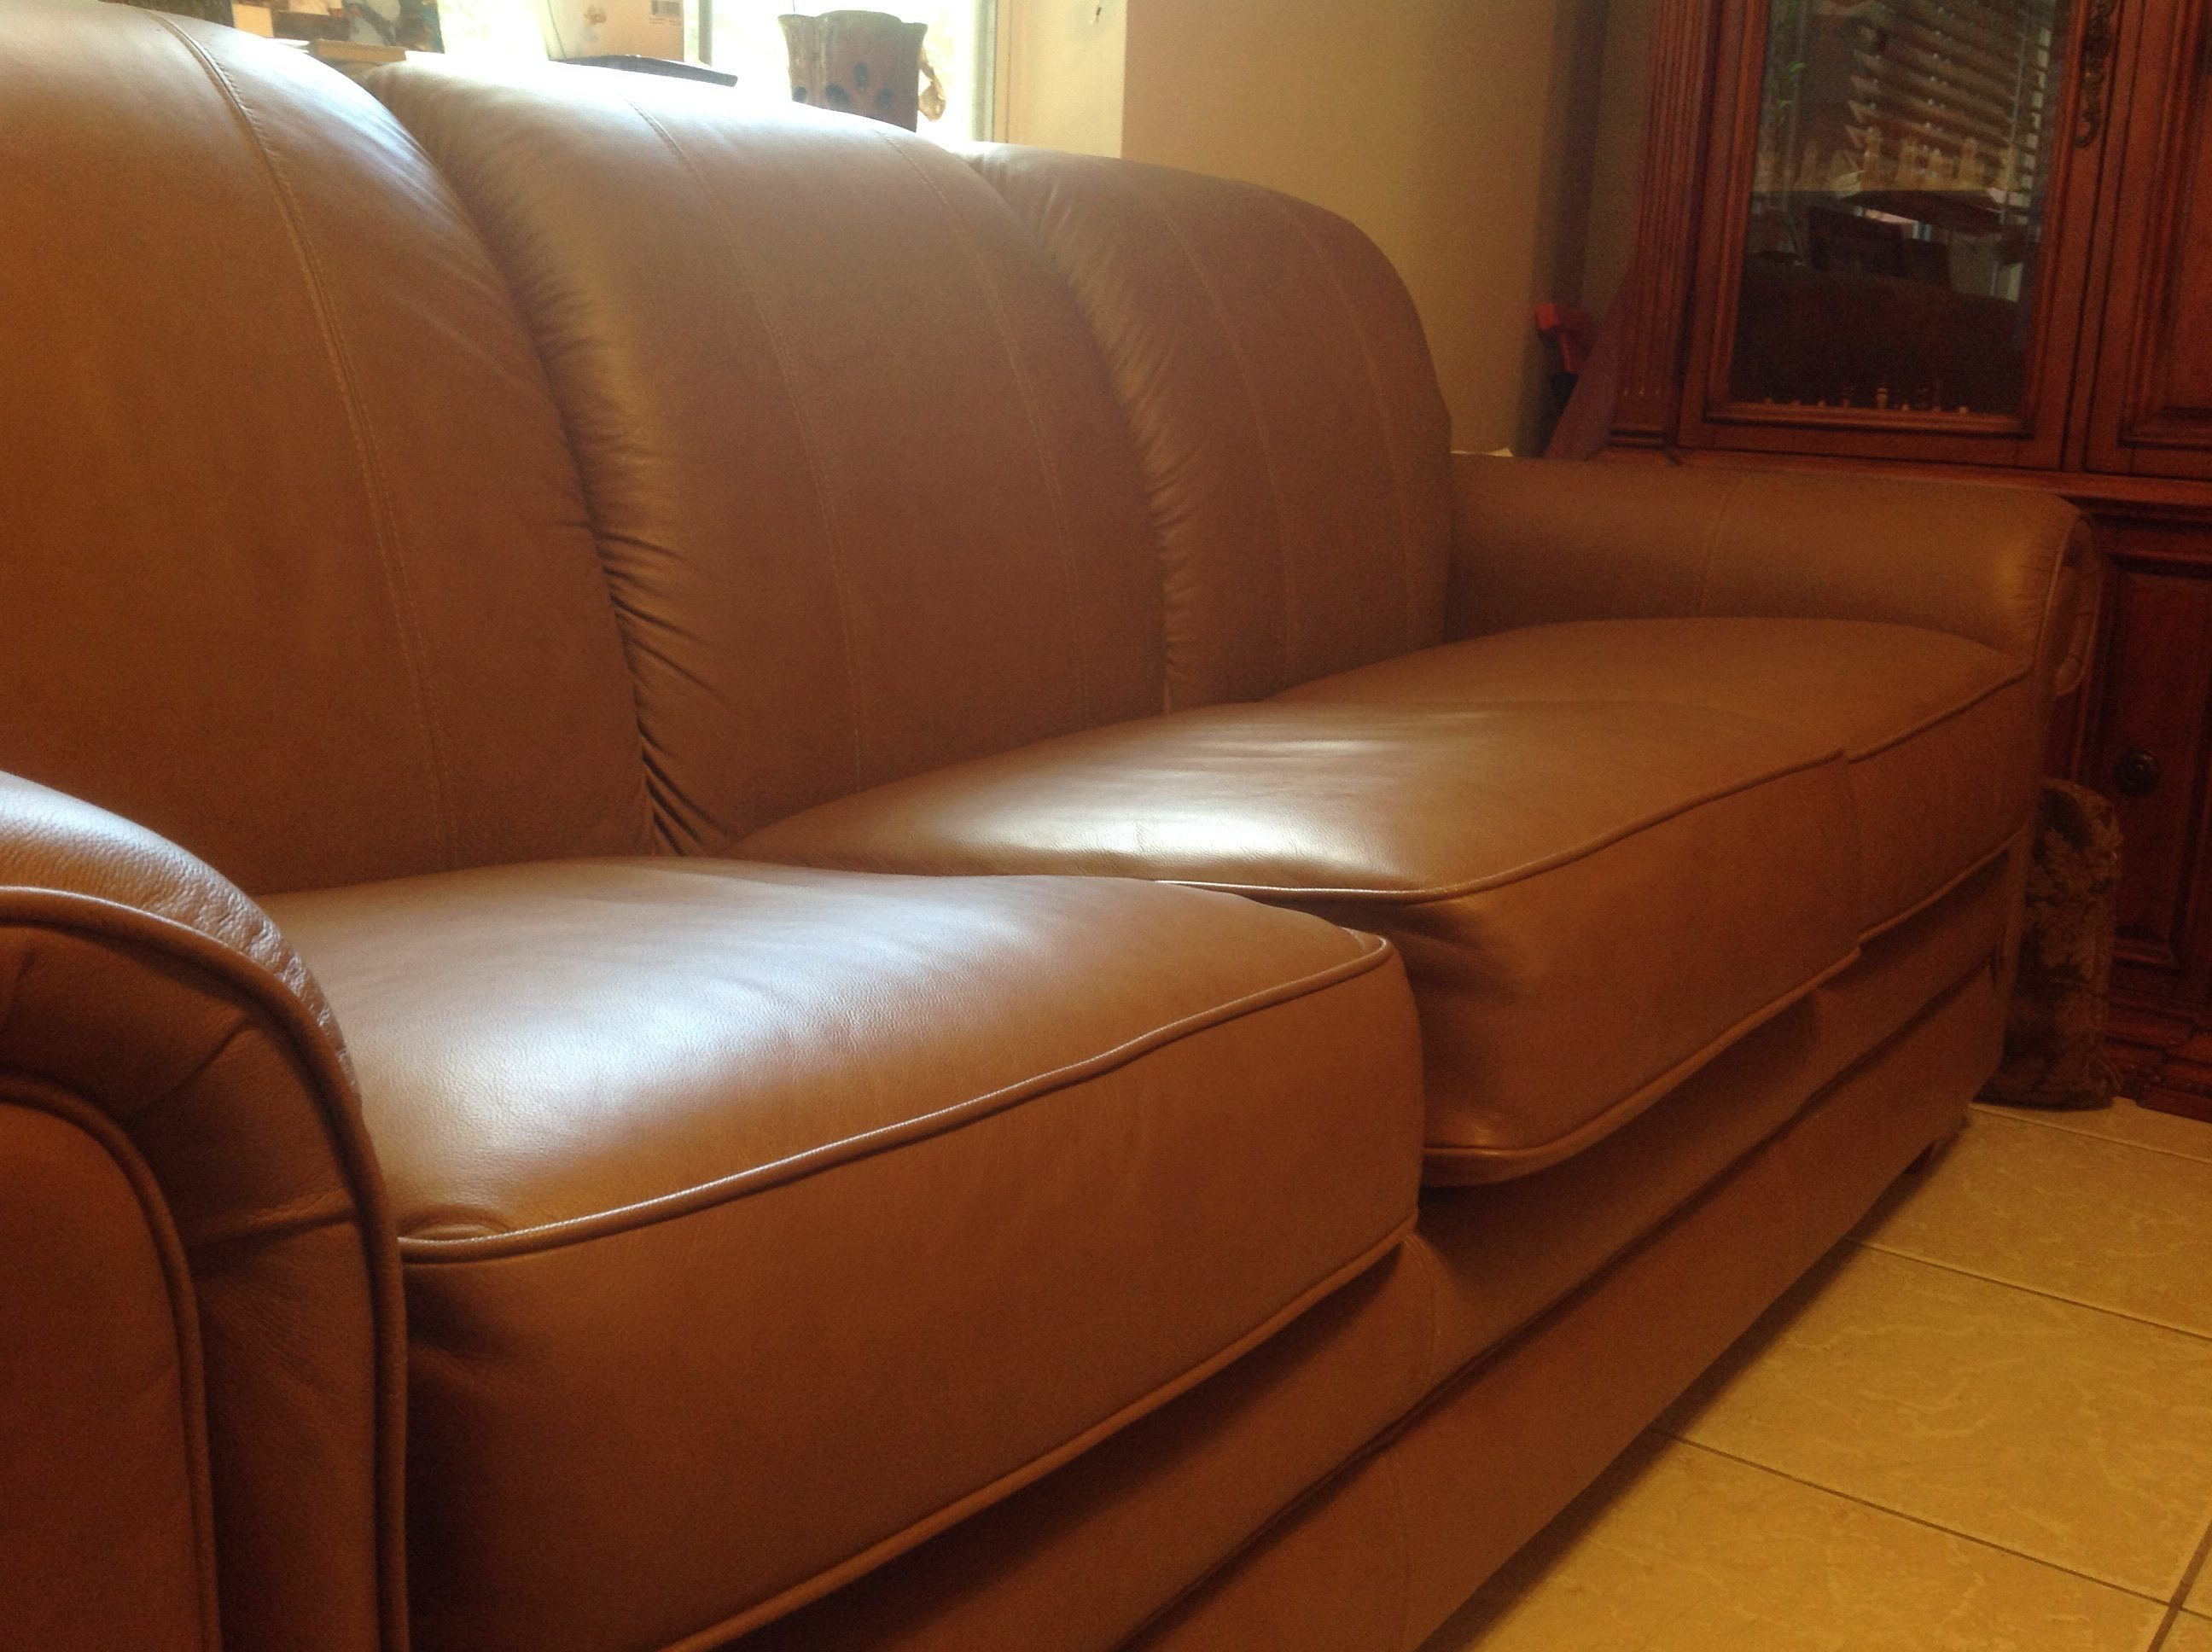 La z boy recliners buy one get one - Sleeper Is Too Low When Packed Into Sofa No Customer Service Sales Agent Keeps Giving Us A Number Where No One Returns Our Call Totally Dissatisfied